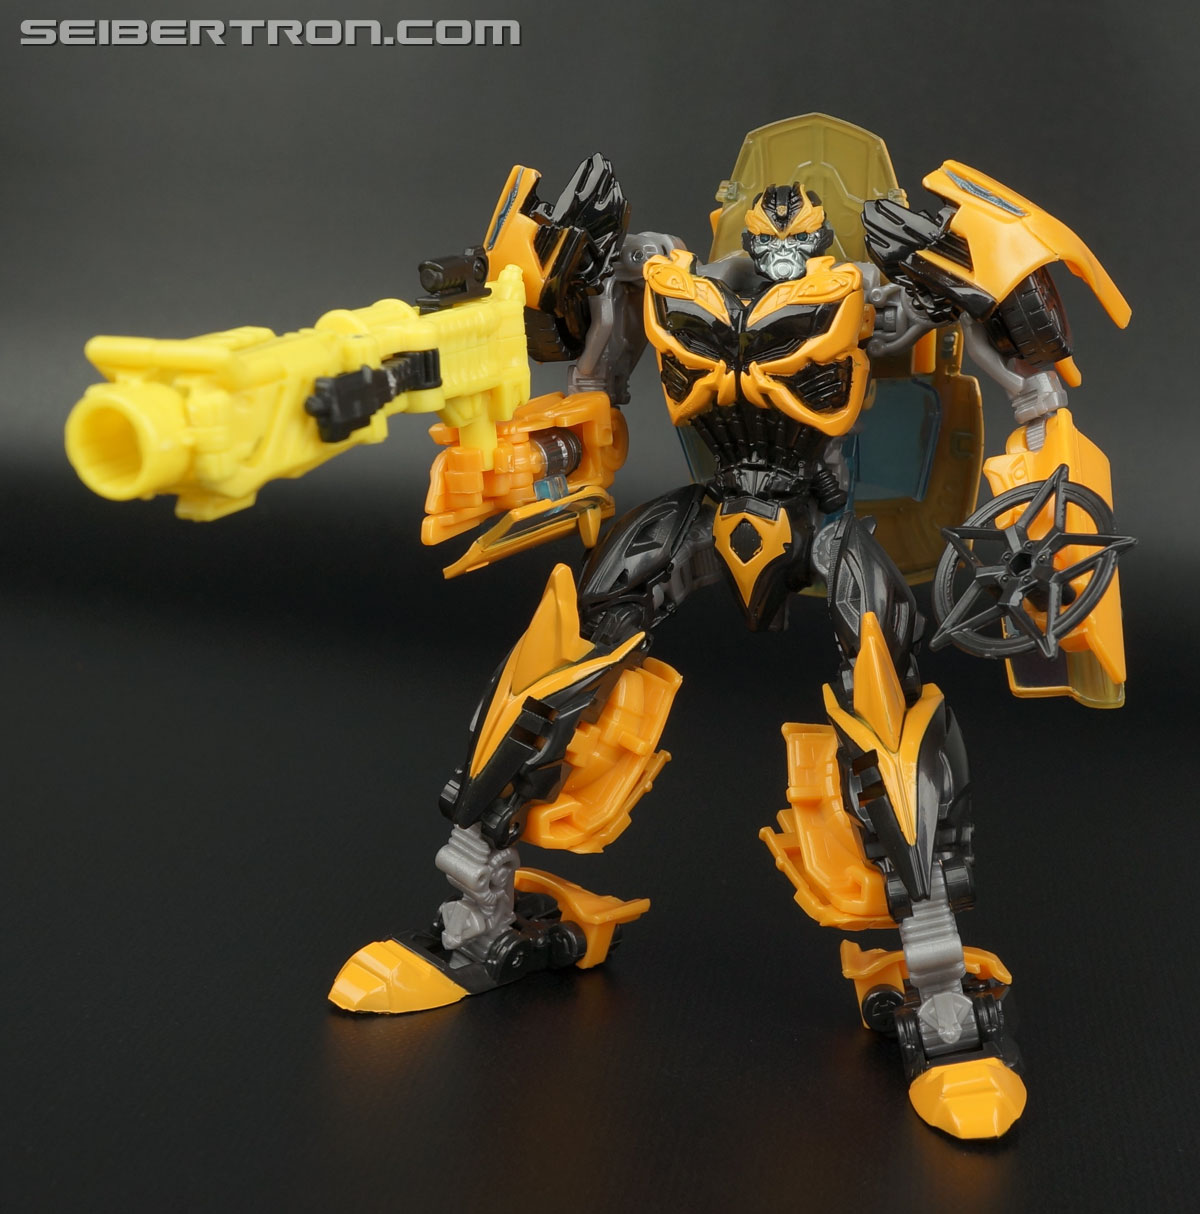 Transformers Age of Extinction: Generations Bumblebee (Image #146 of 190)